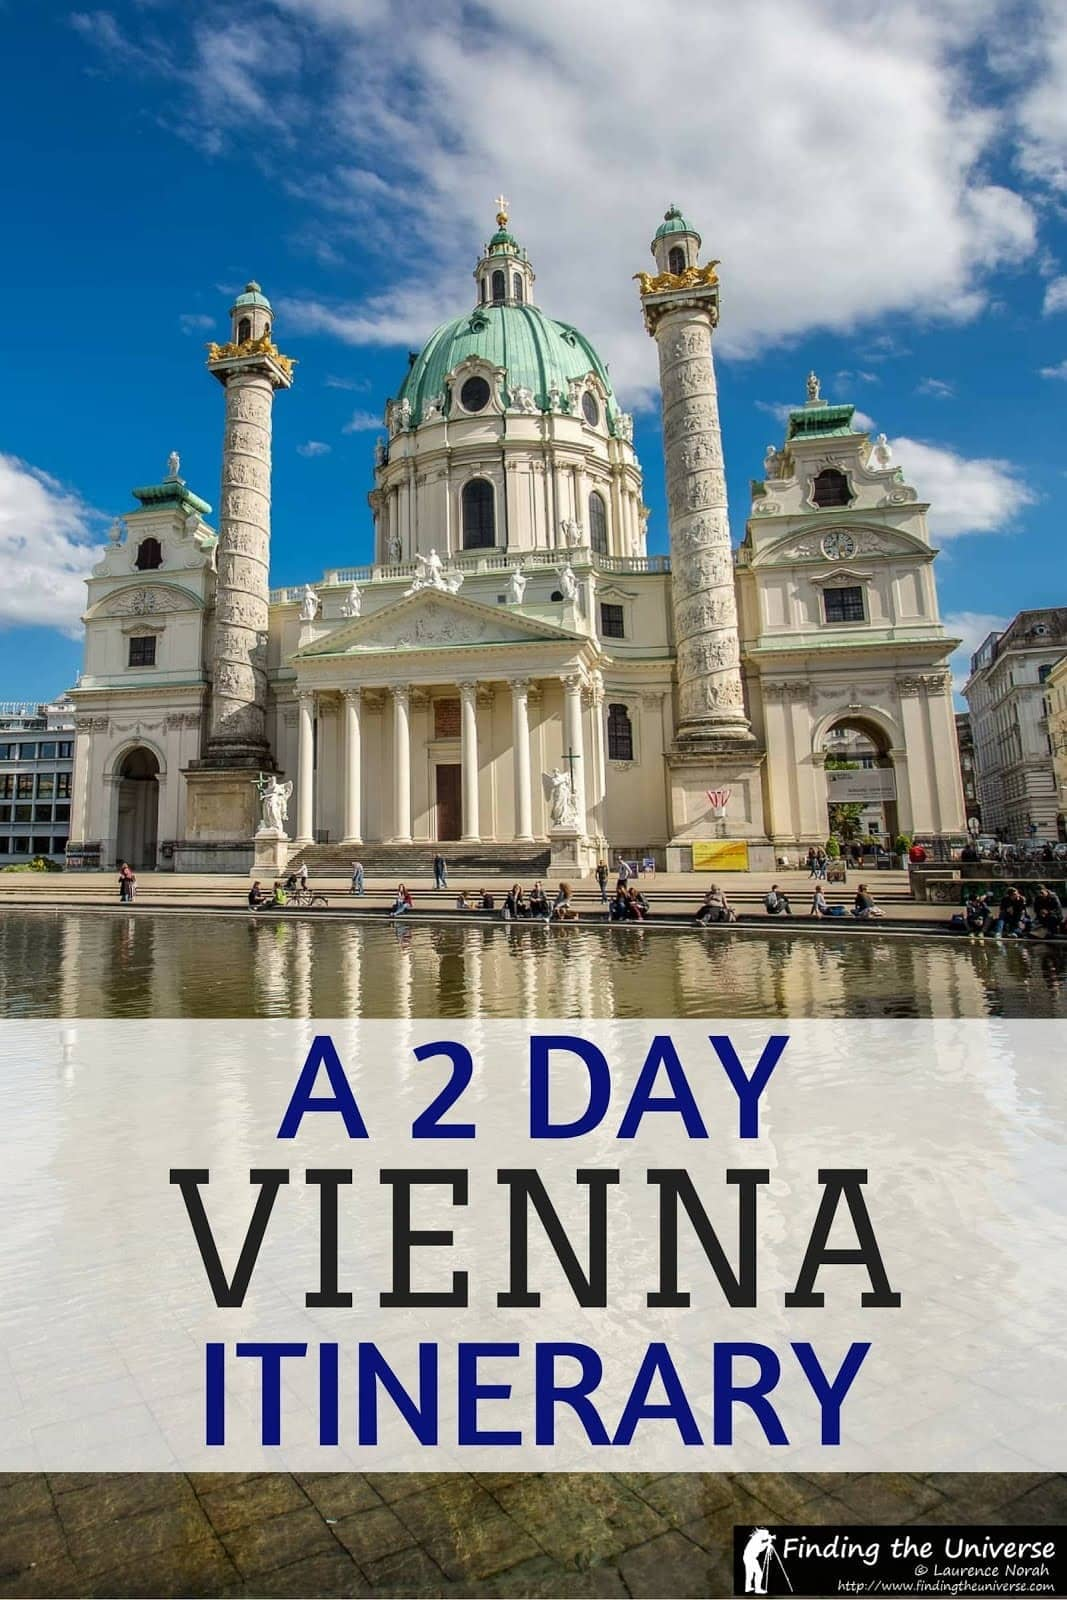 A two day itinerary for Vienna, covering the major sights, museums and highlights of this beautiful city, as well as planning tips and advice for your visit.